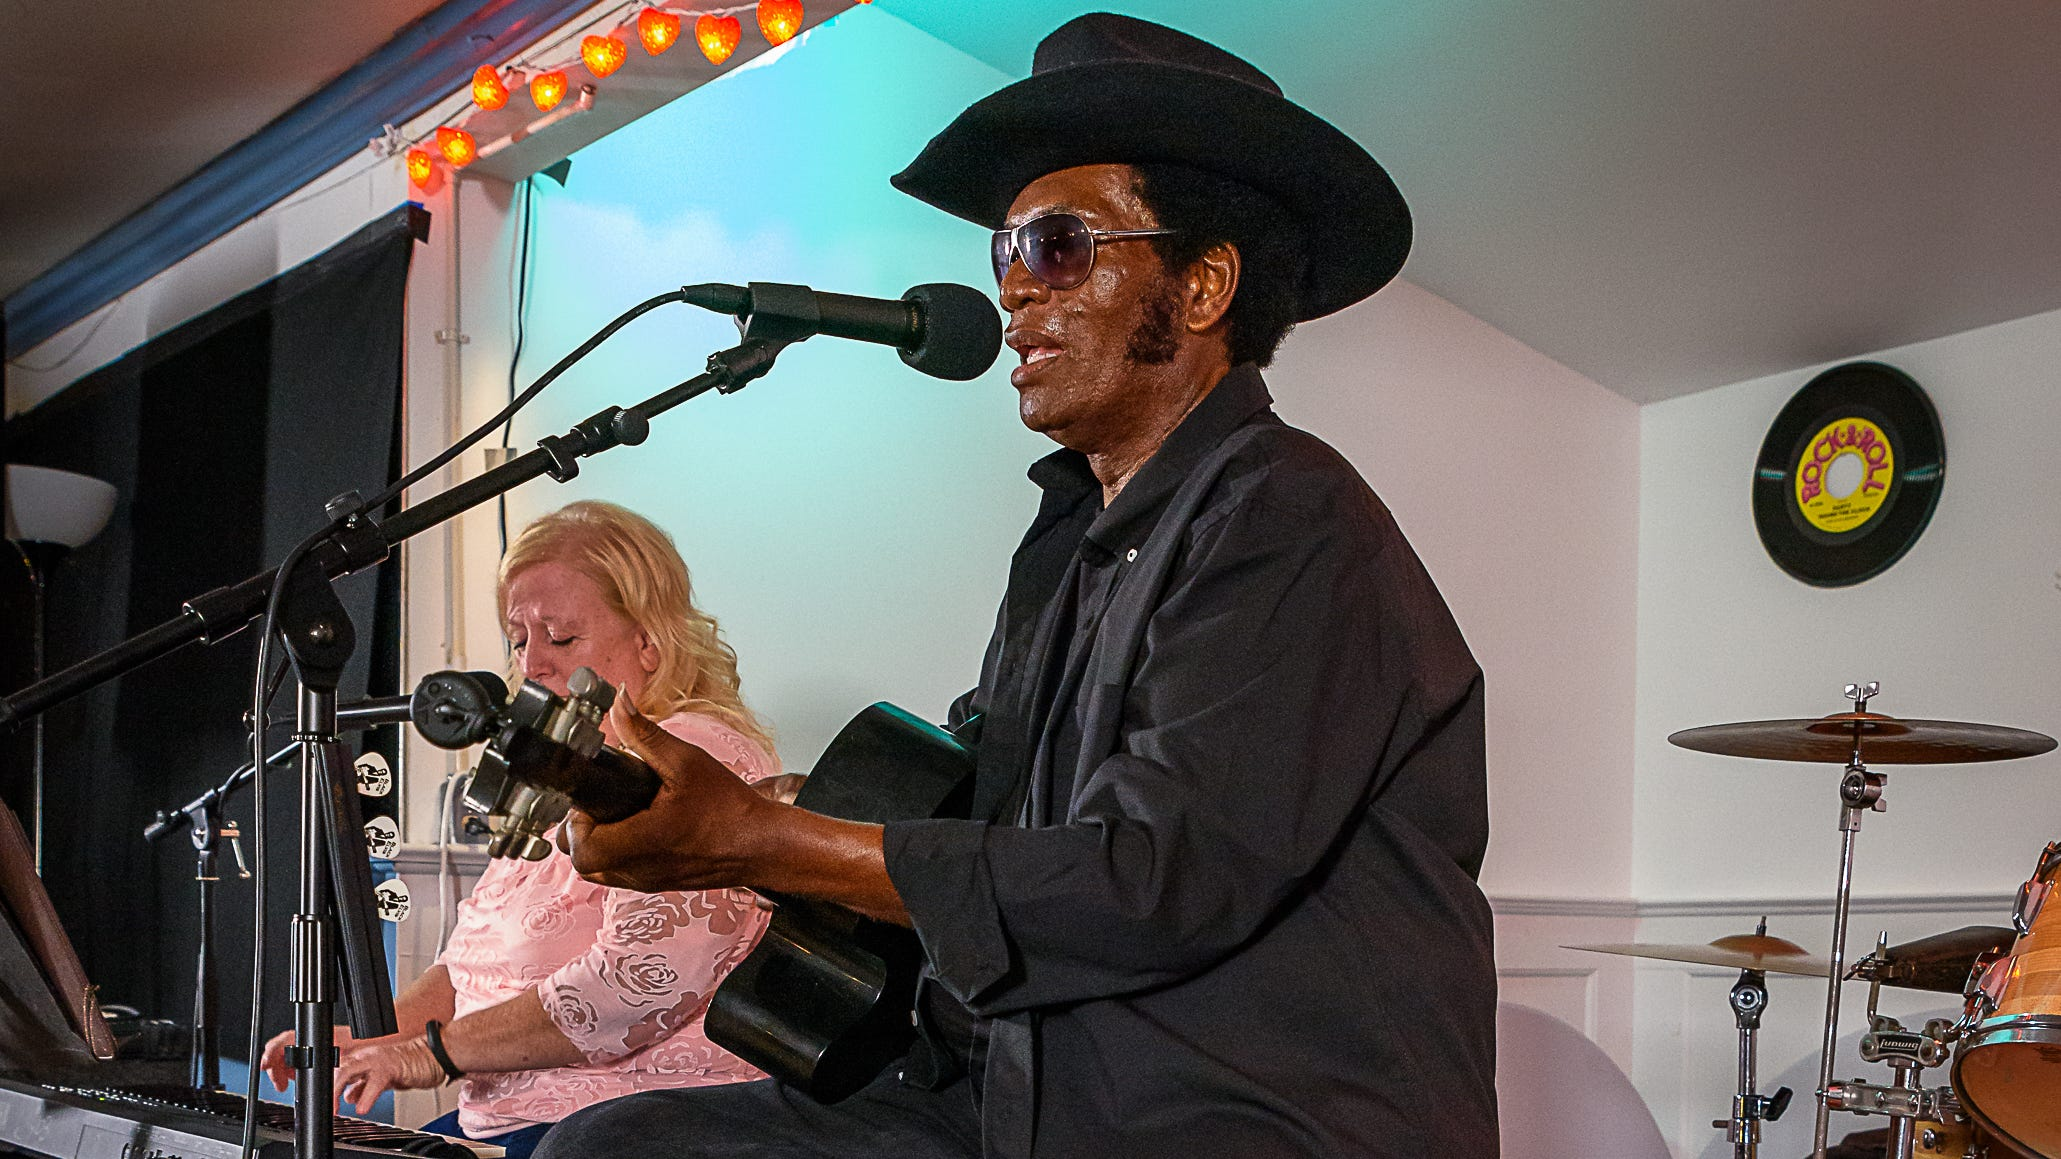 Legendary Eastern Shore performer, Black Elvis, along with his keyboardist, Snowflake. sings for the crowd at Giddens' Do Drop Inn's 50th anniversary celebration in Weirwood on Sept. 22.